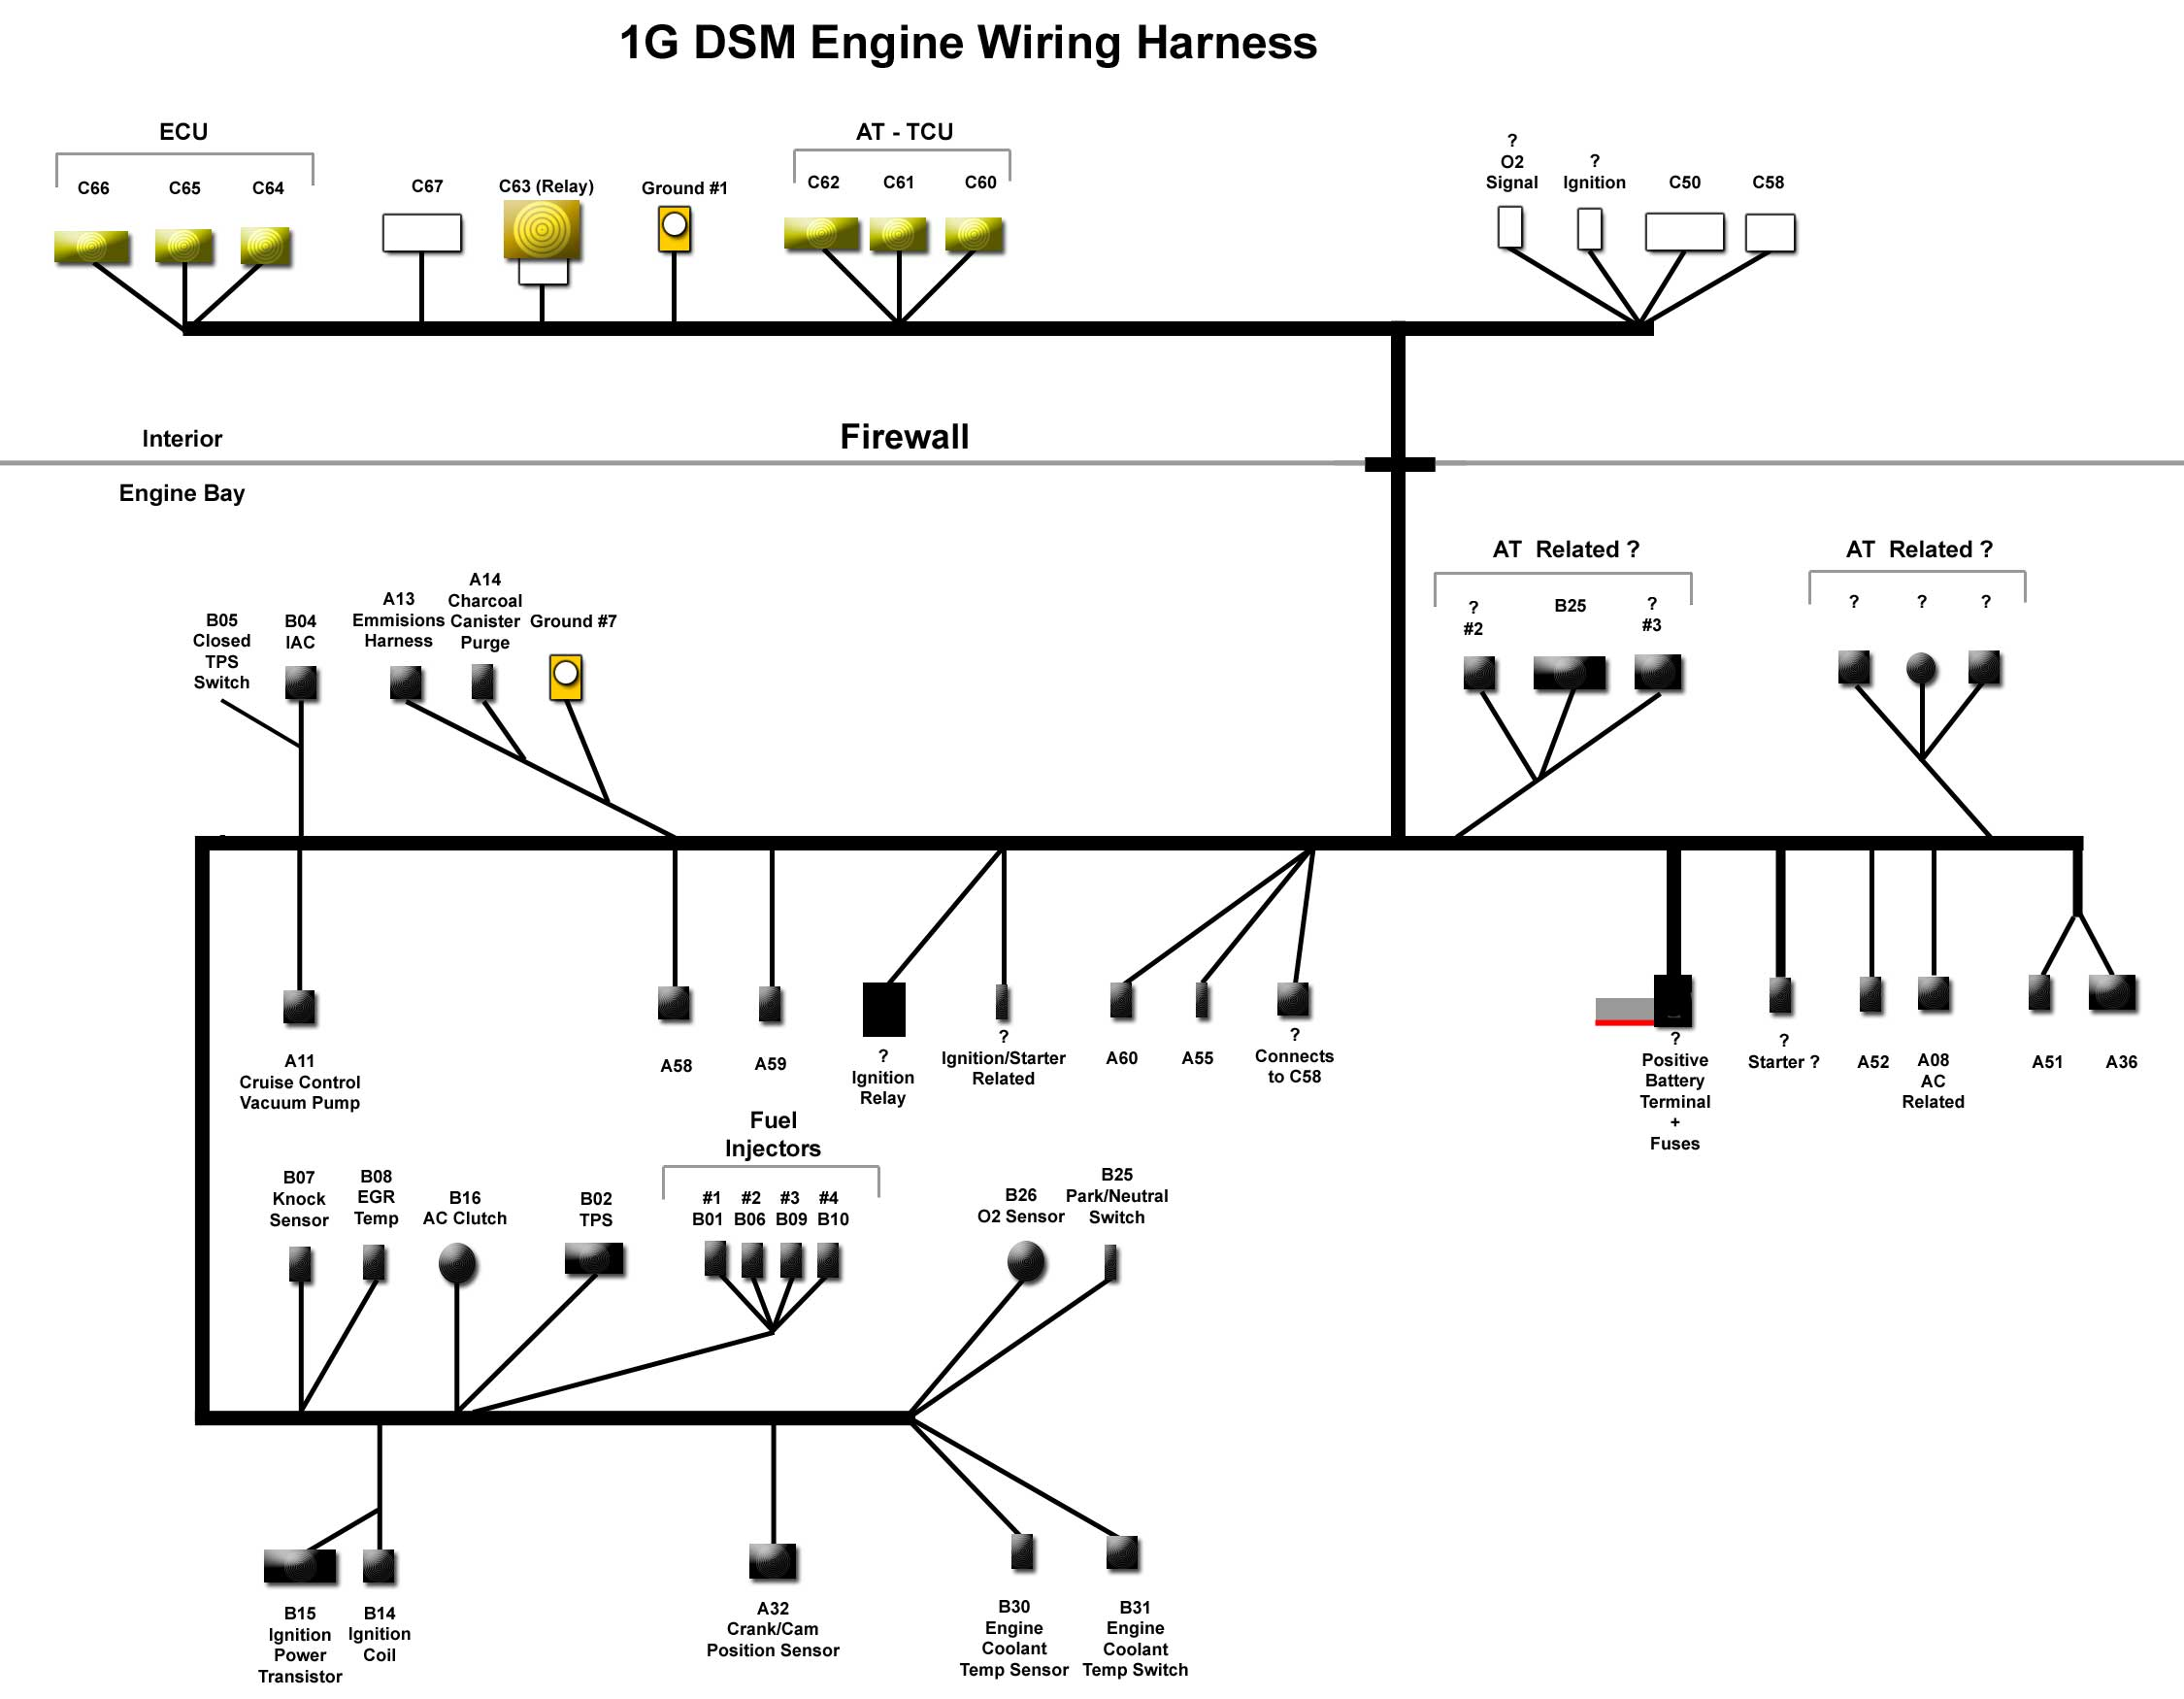 1G DSM EngineHarness 1gb dsm 4g63 turbo wiring harness diagram wiring harness diagram at aneh.co